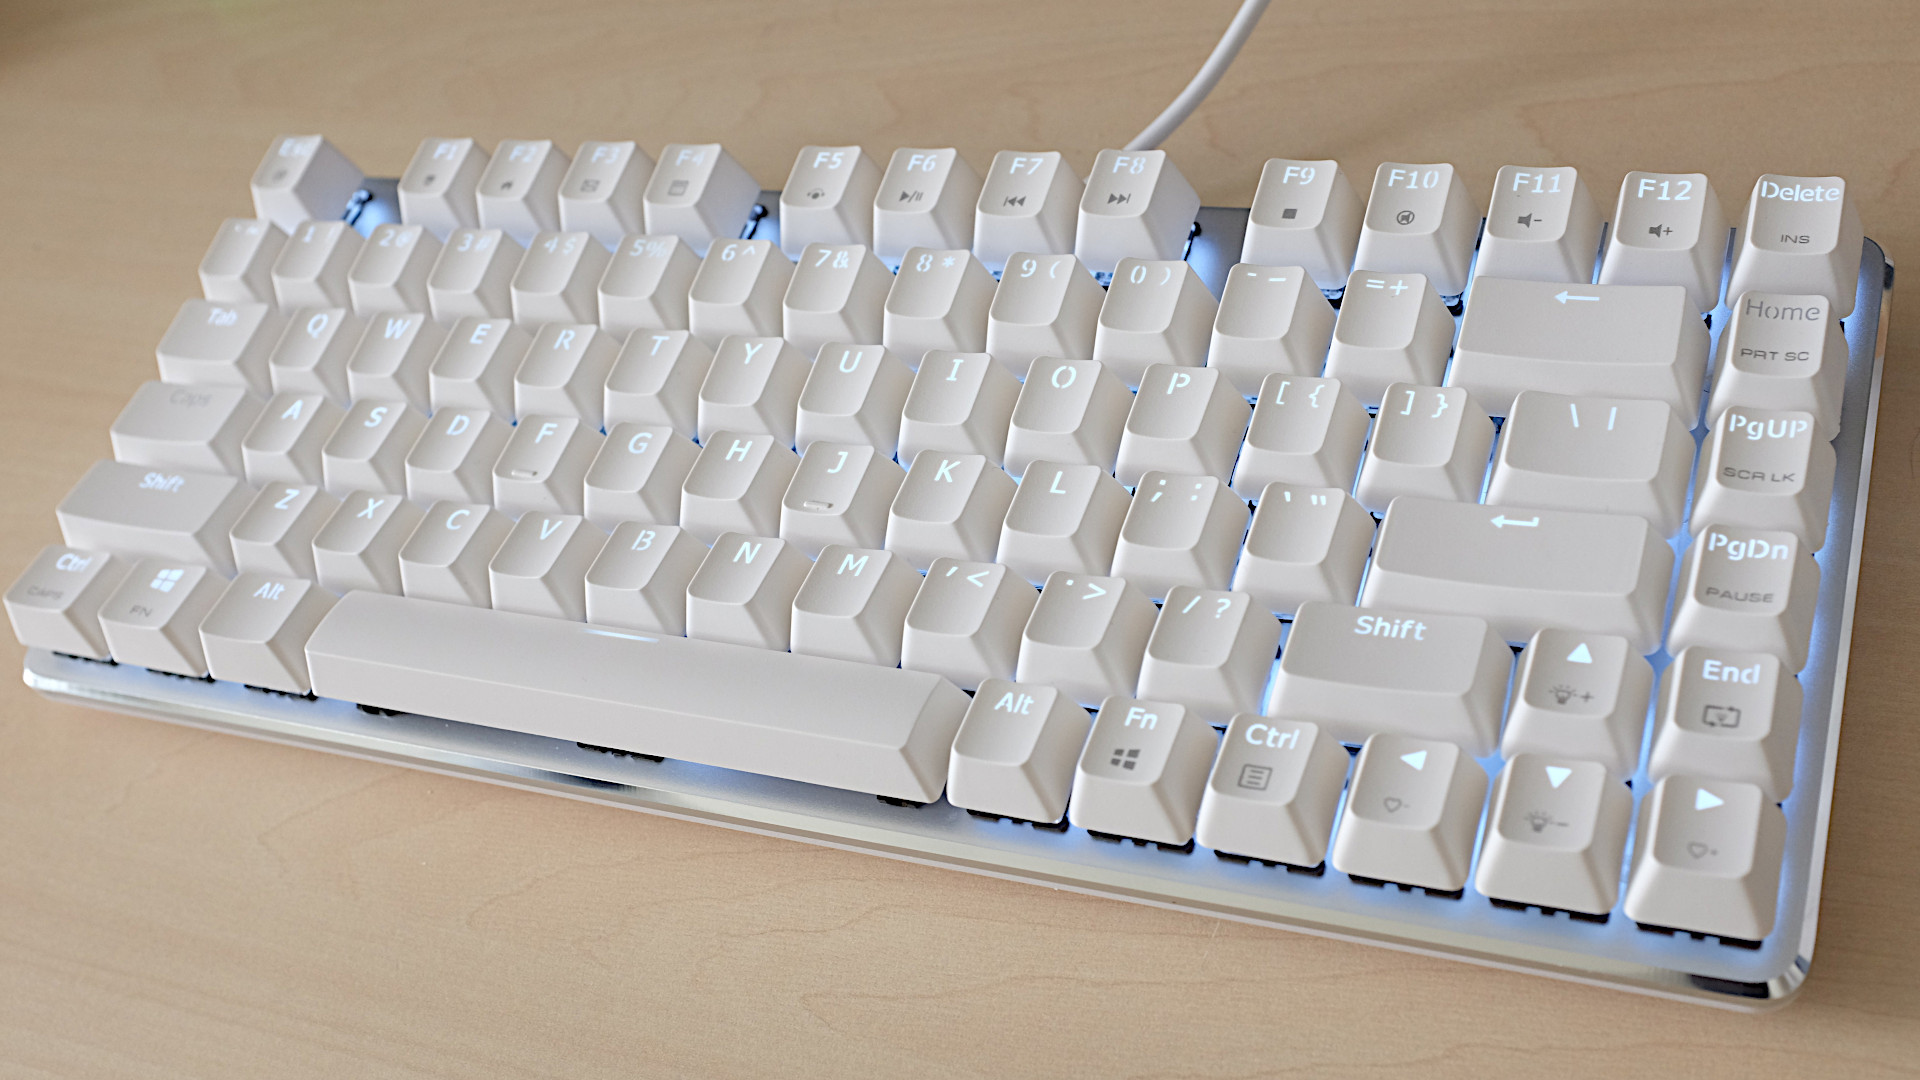 Magicforce 82 met Gateron Greens